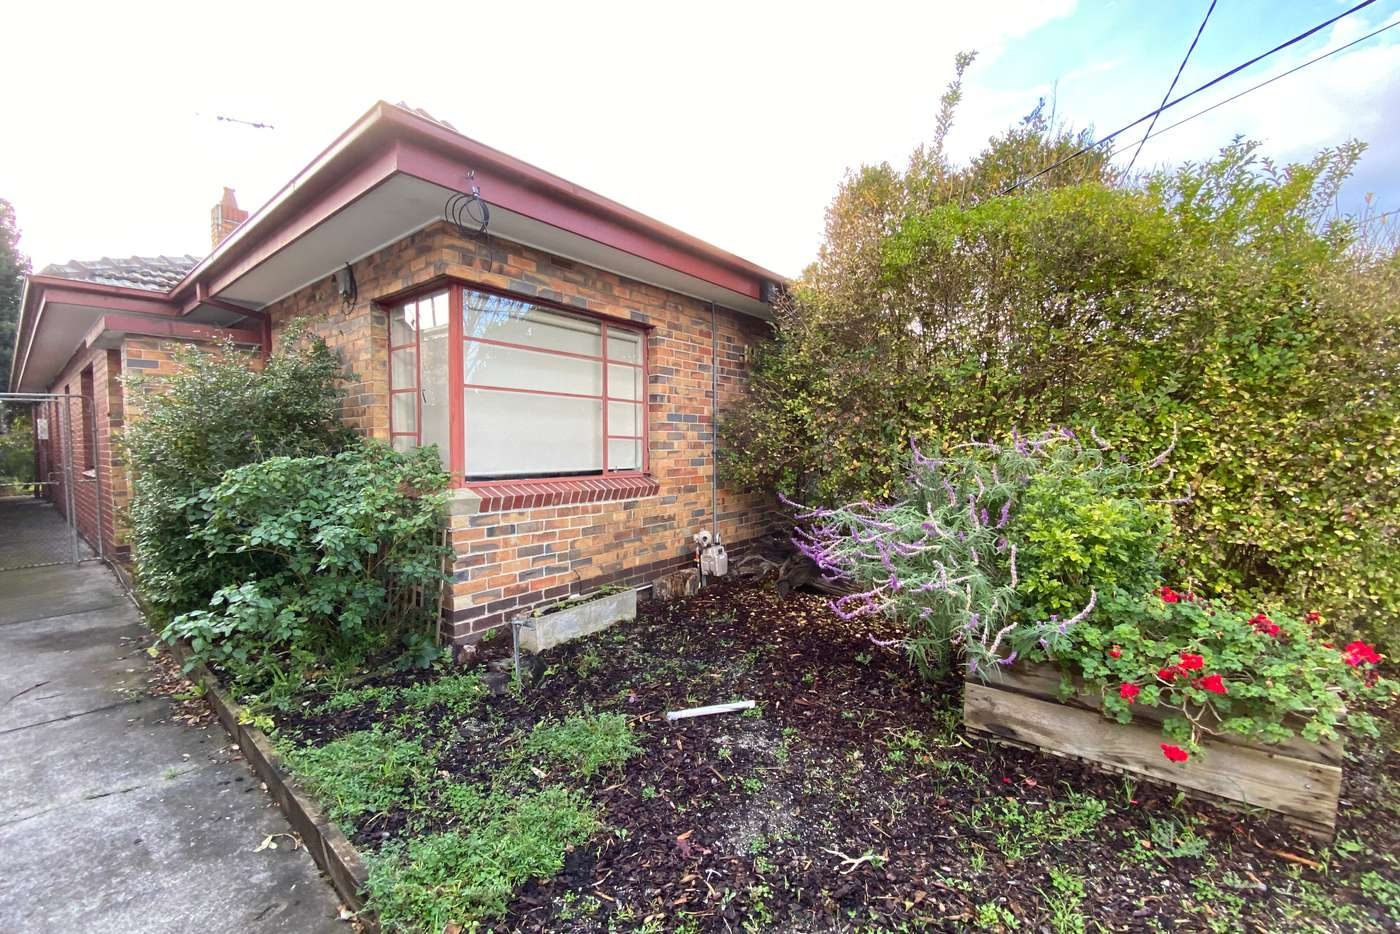 Main view of Homely house listing, 133 Miller Street, Fitzroy North VIC 3068